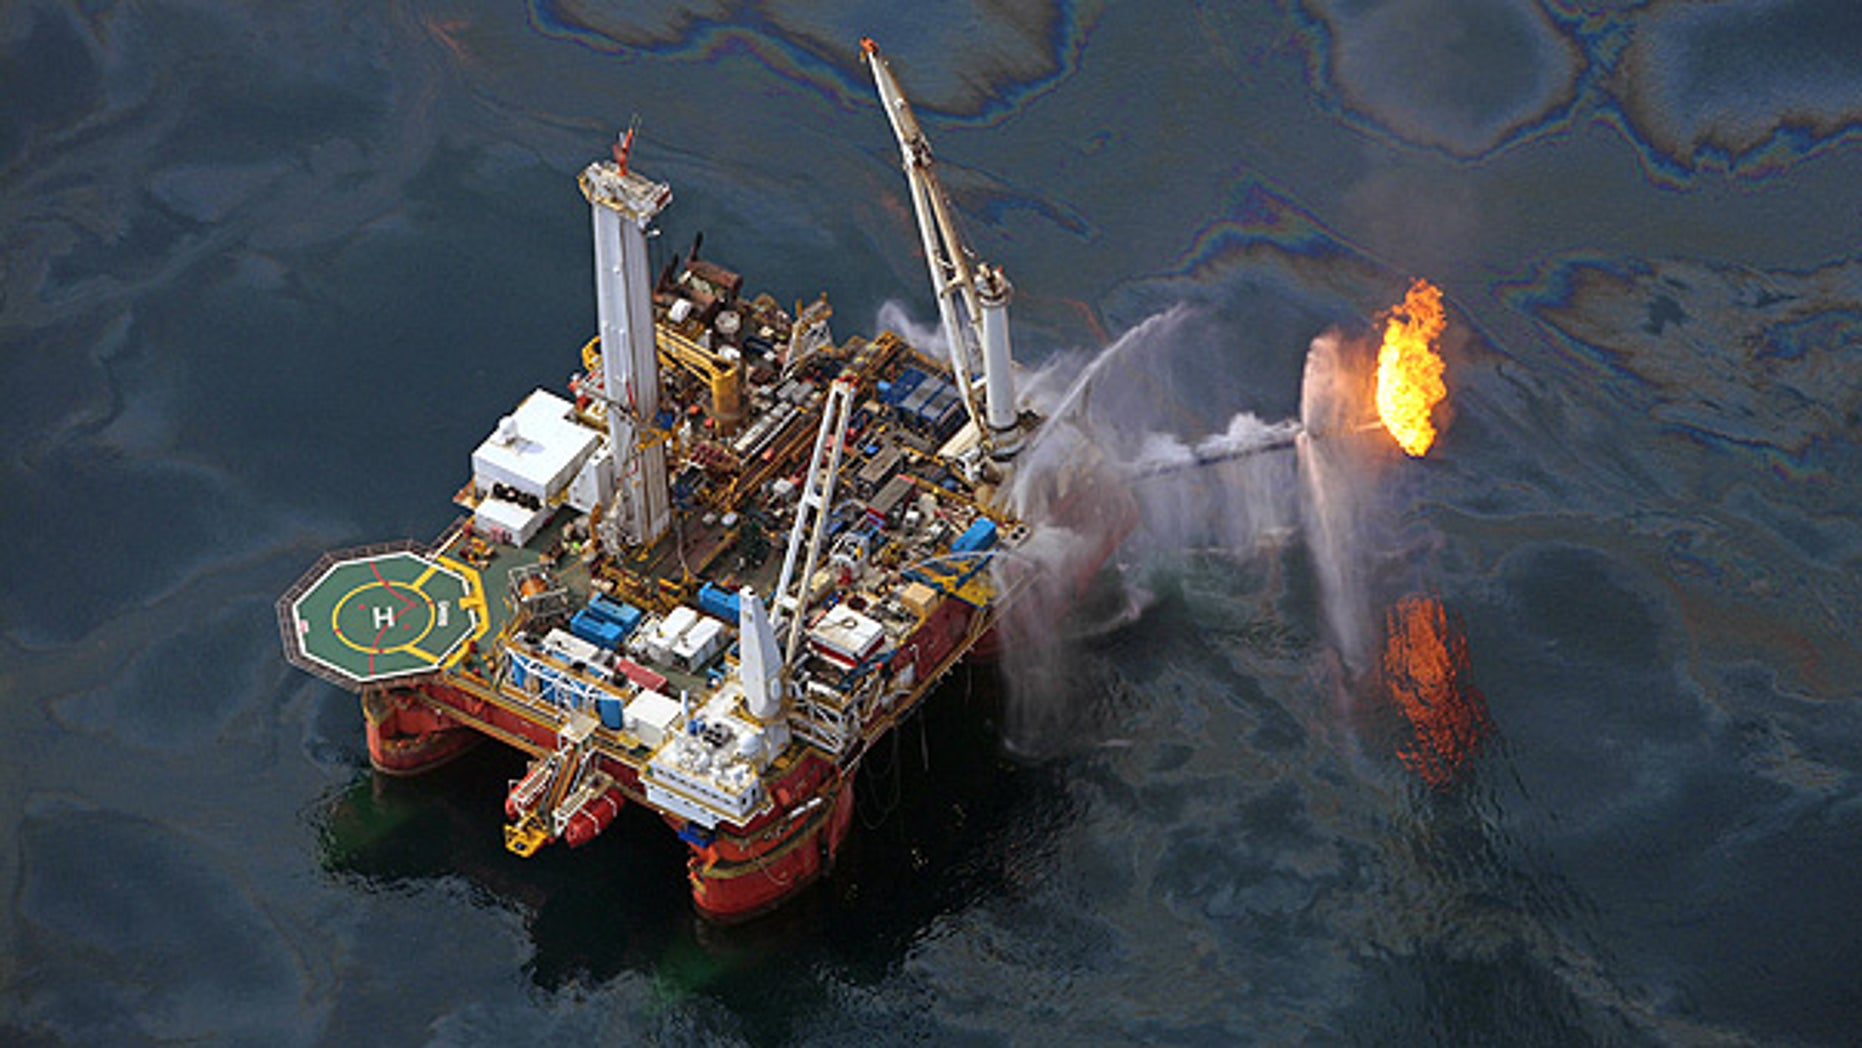 June 16: A drilling rig operates in the Gulf of Mexico at the site of the Deepwater Horizon disaster.